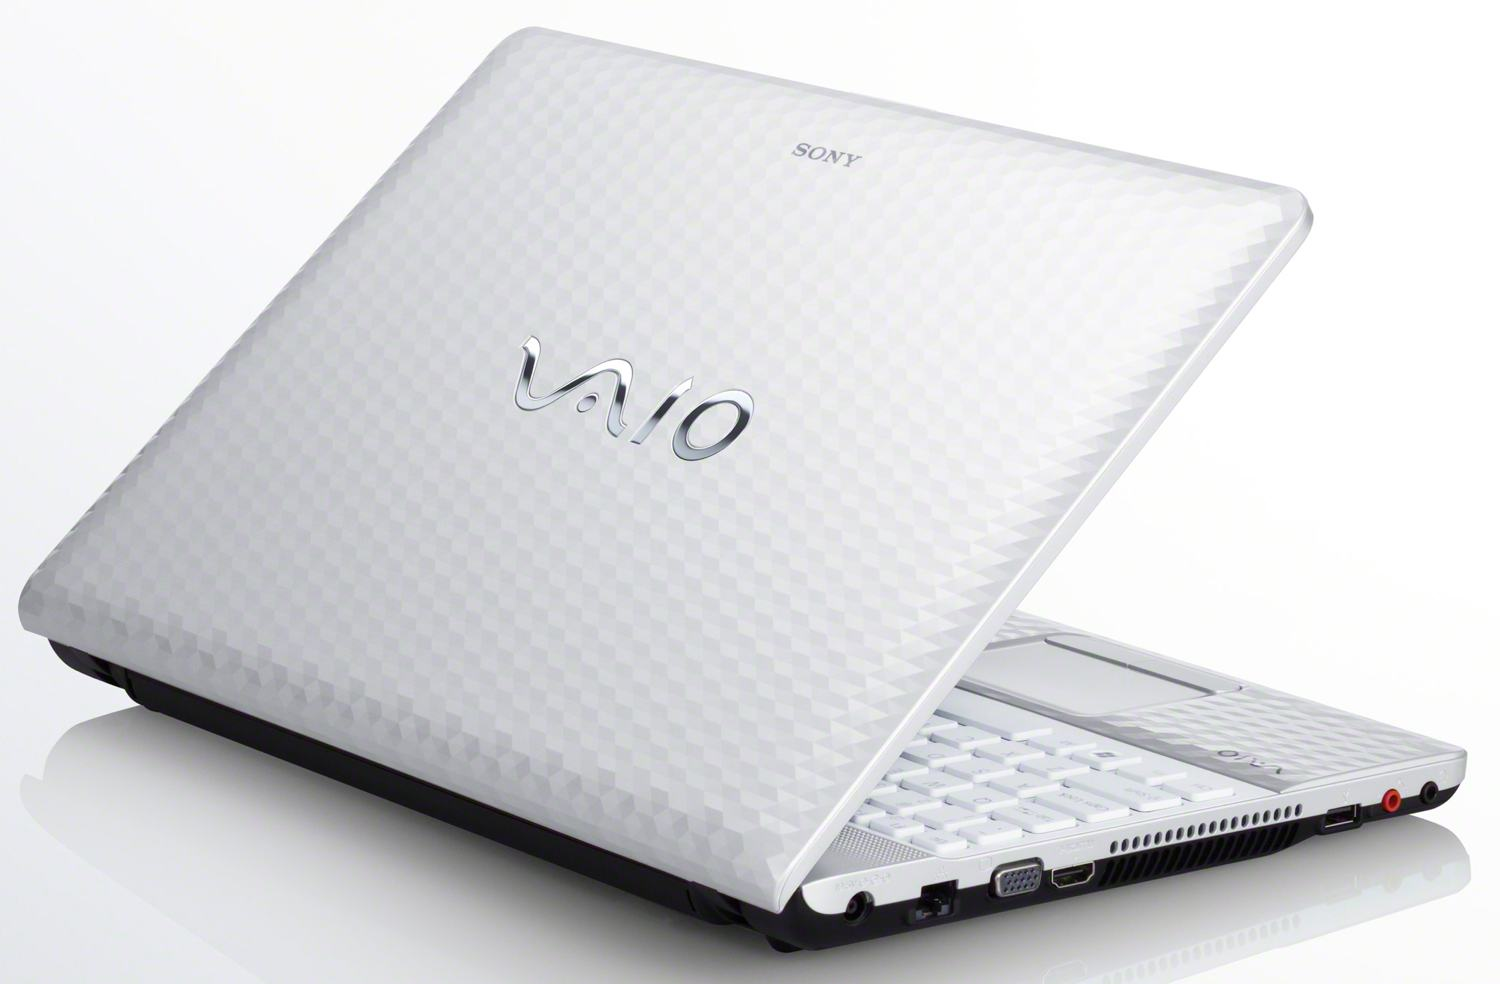 sony vaio laptop. sony-11q4-vaio-eh-white-coveropen-lg sony vaio laptop